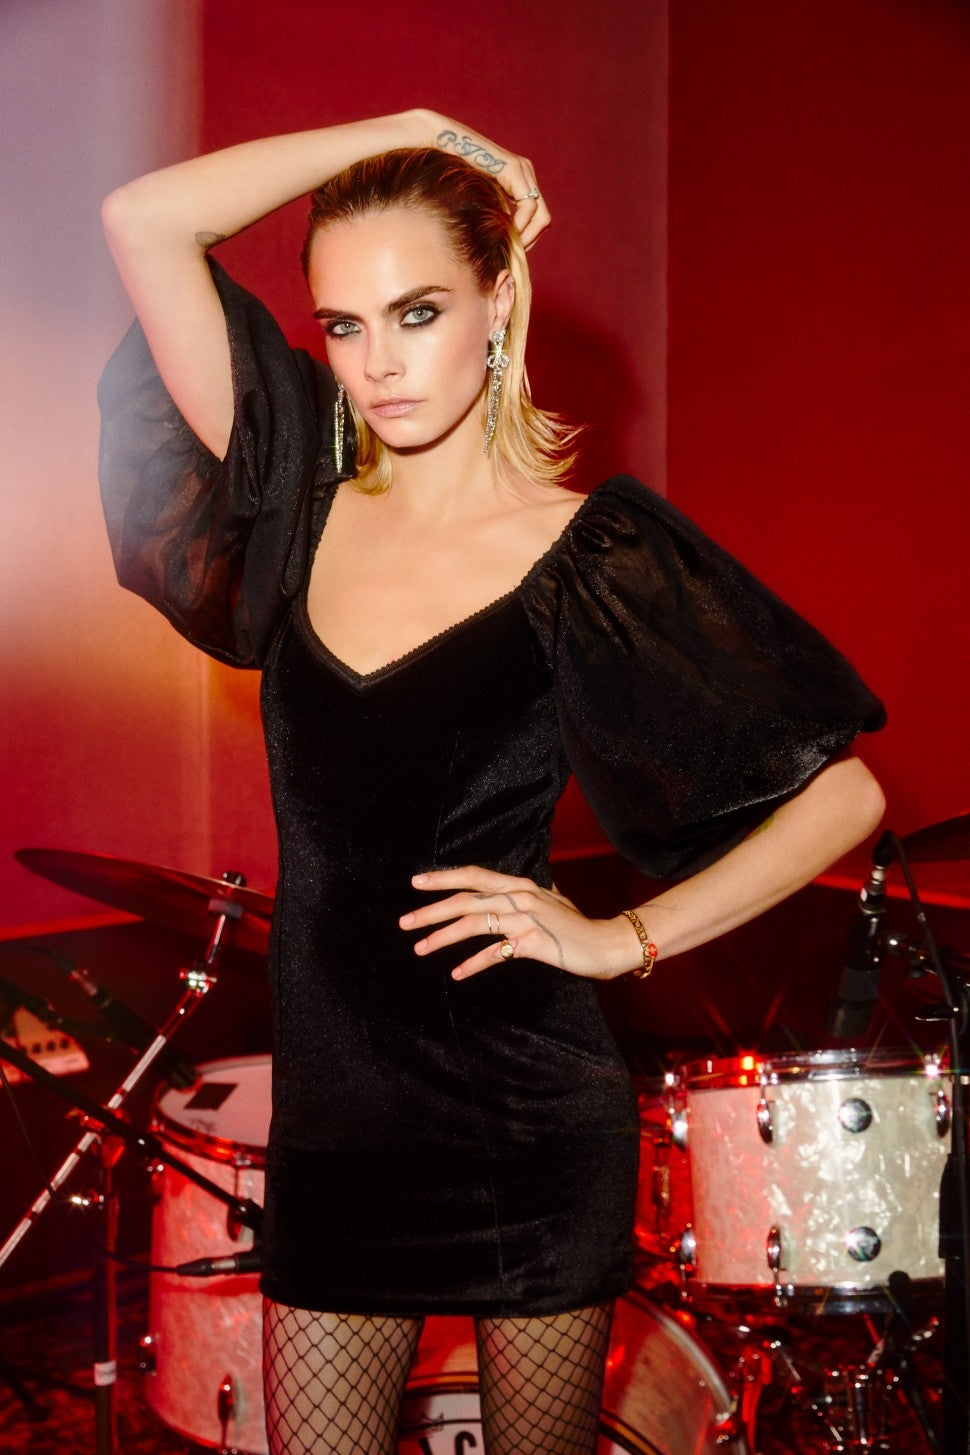 Cara Delevingne x Nasty Gal collection